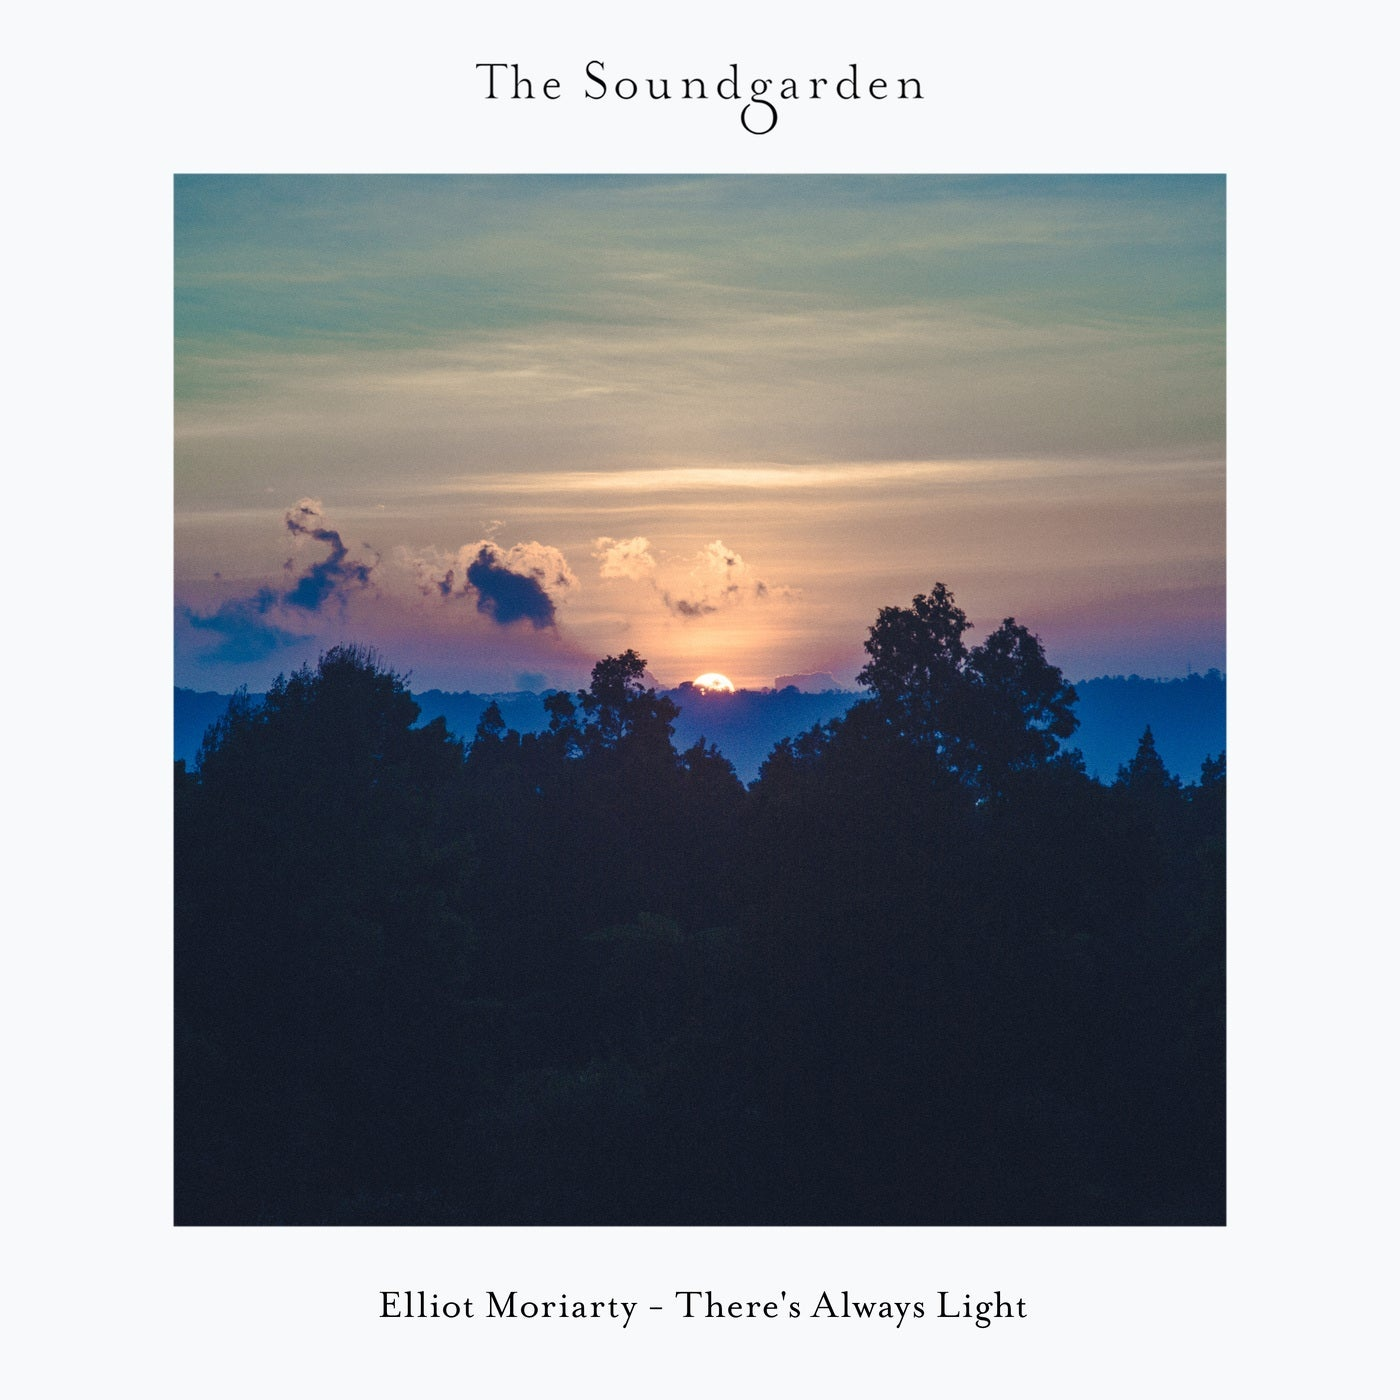 Download There's Always Light on Electrobuzz